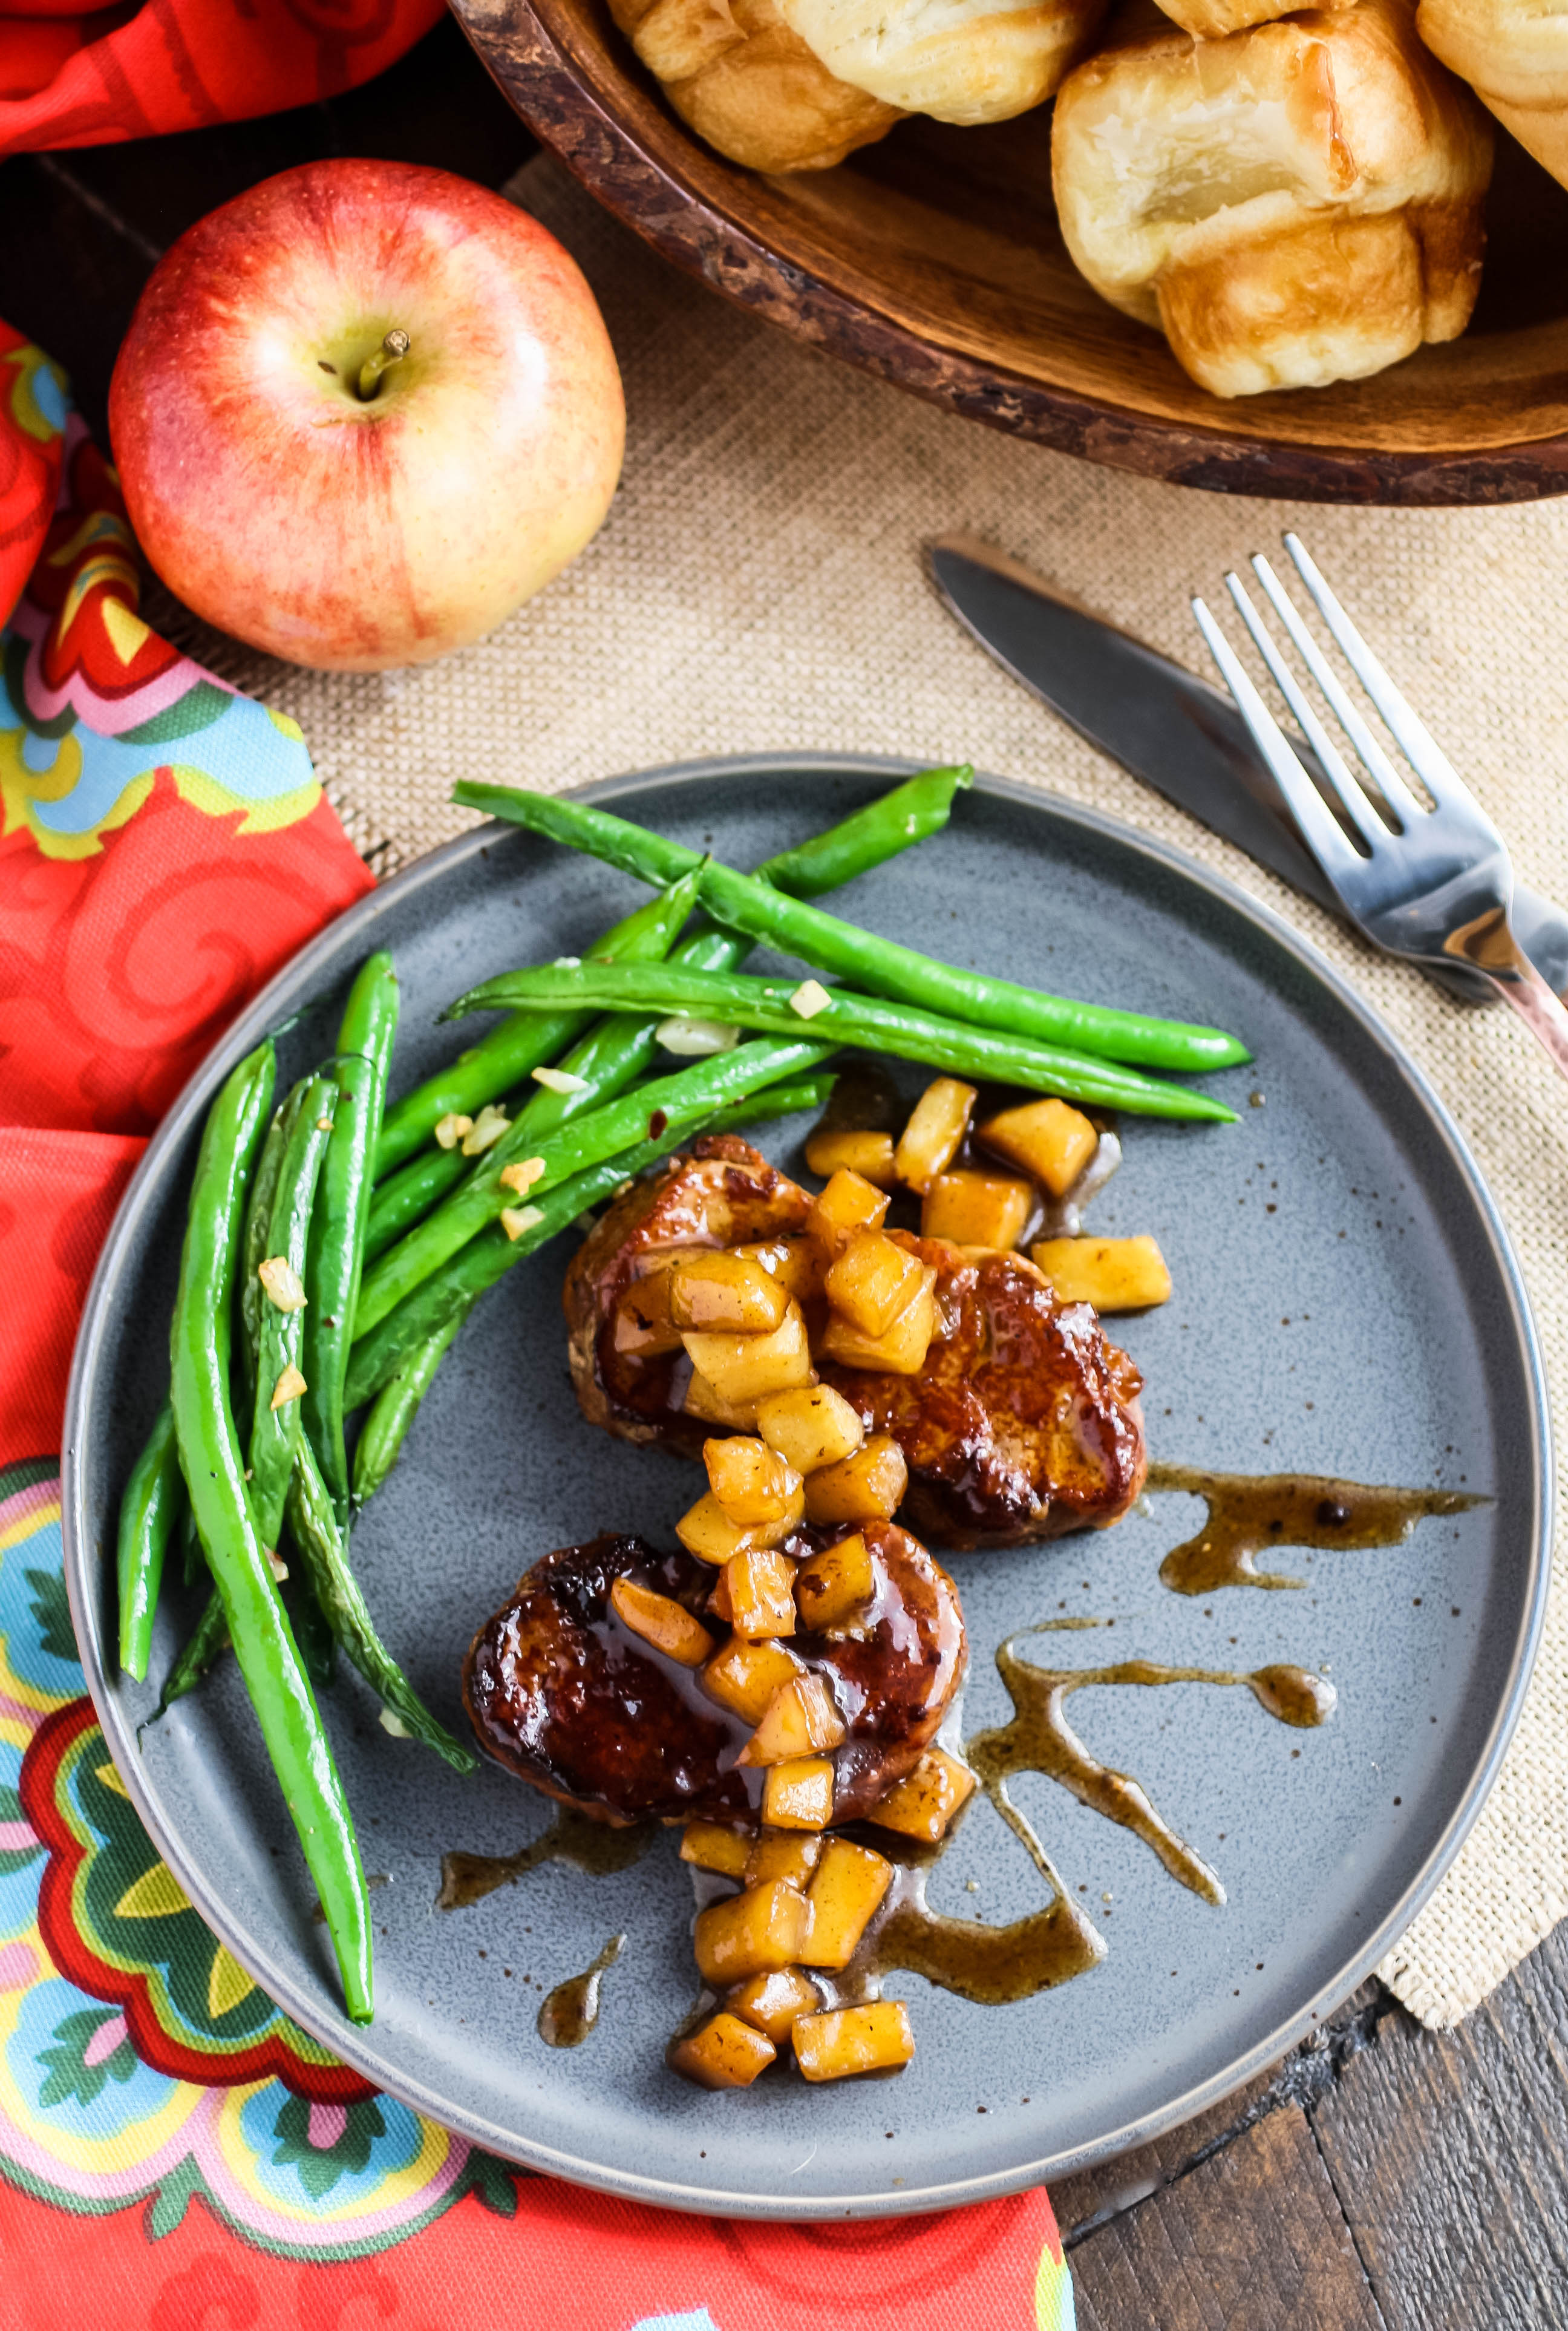 Caramel Apple Pork Medallions is a delightful dish. Caramel Apple Pork Medallions is an ideal meal option that's easy to make.